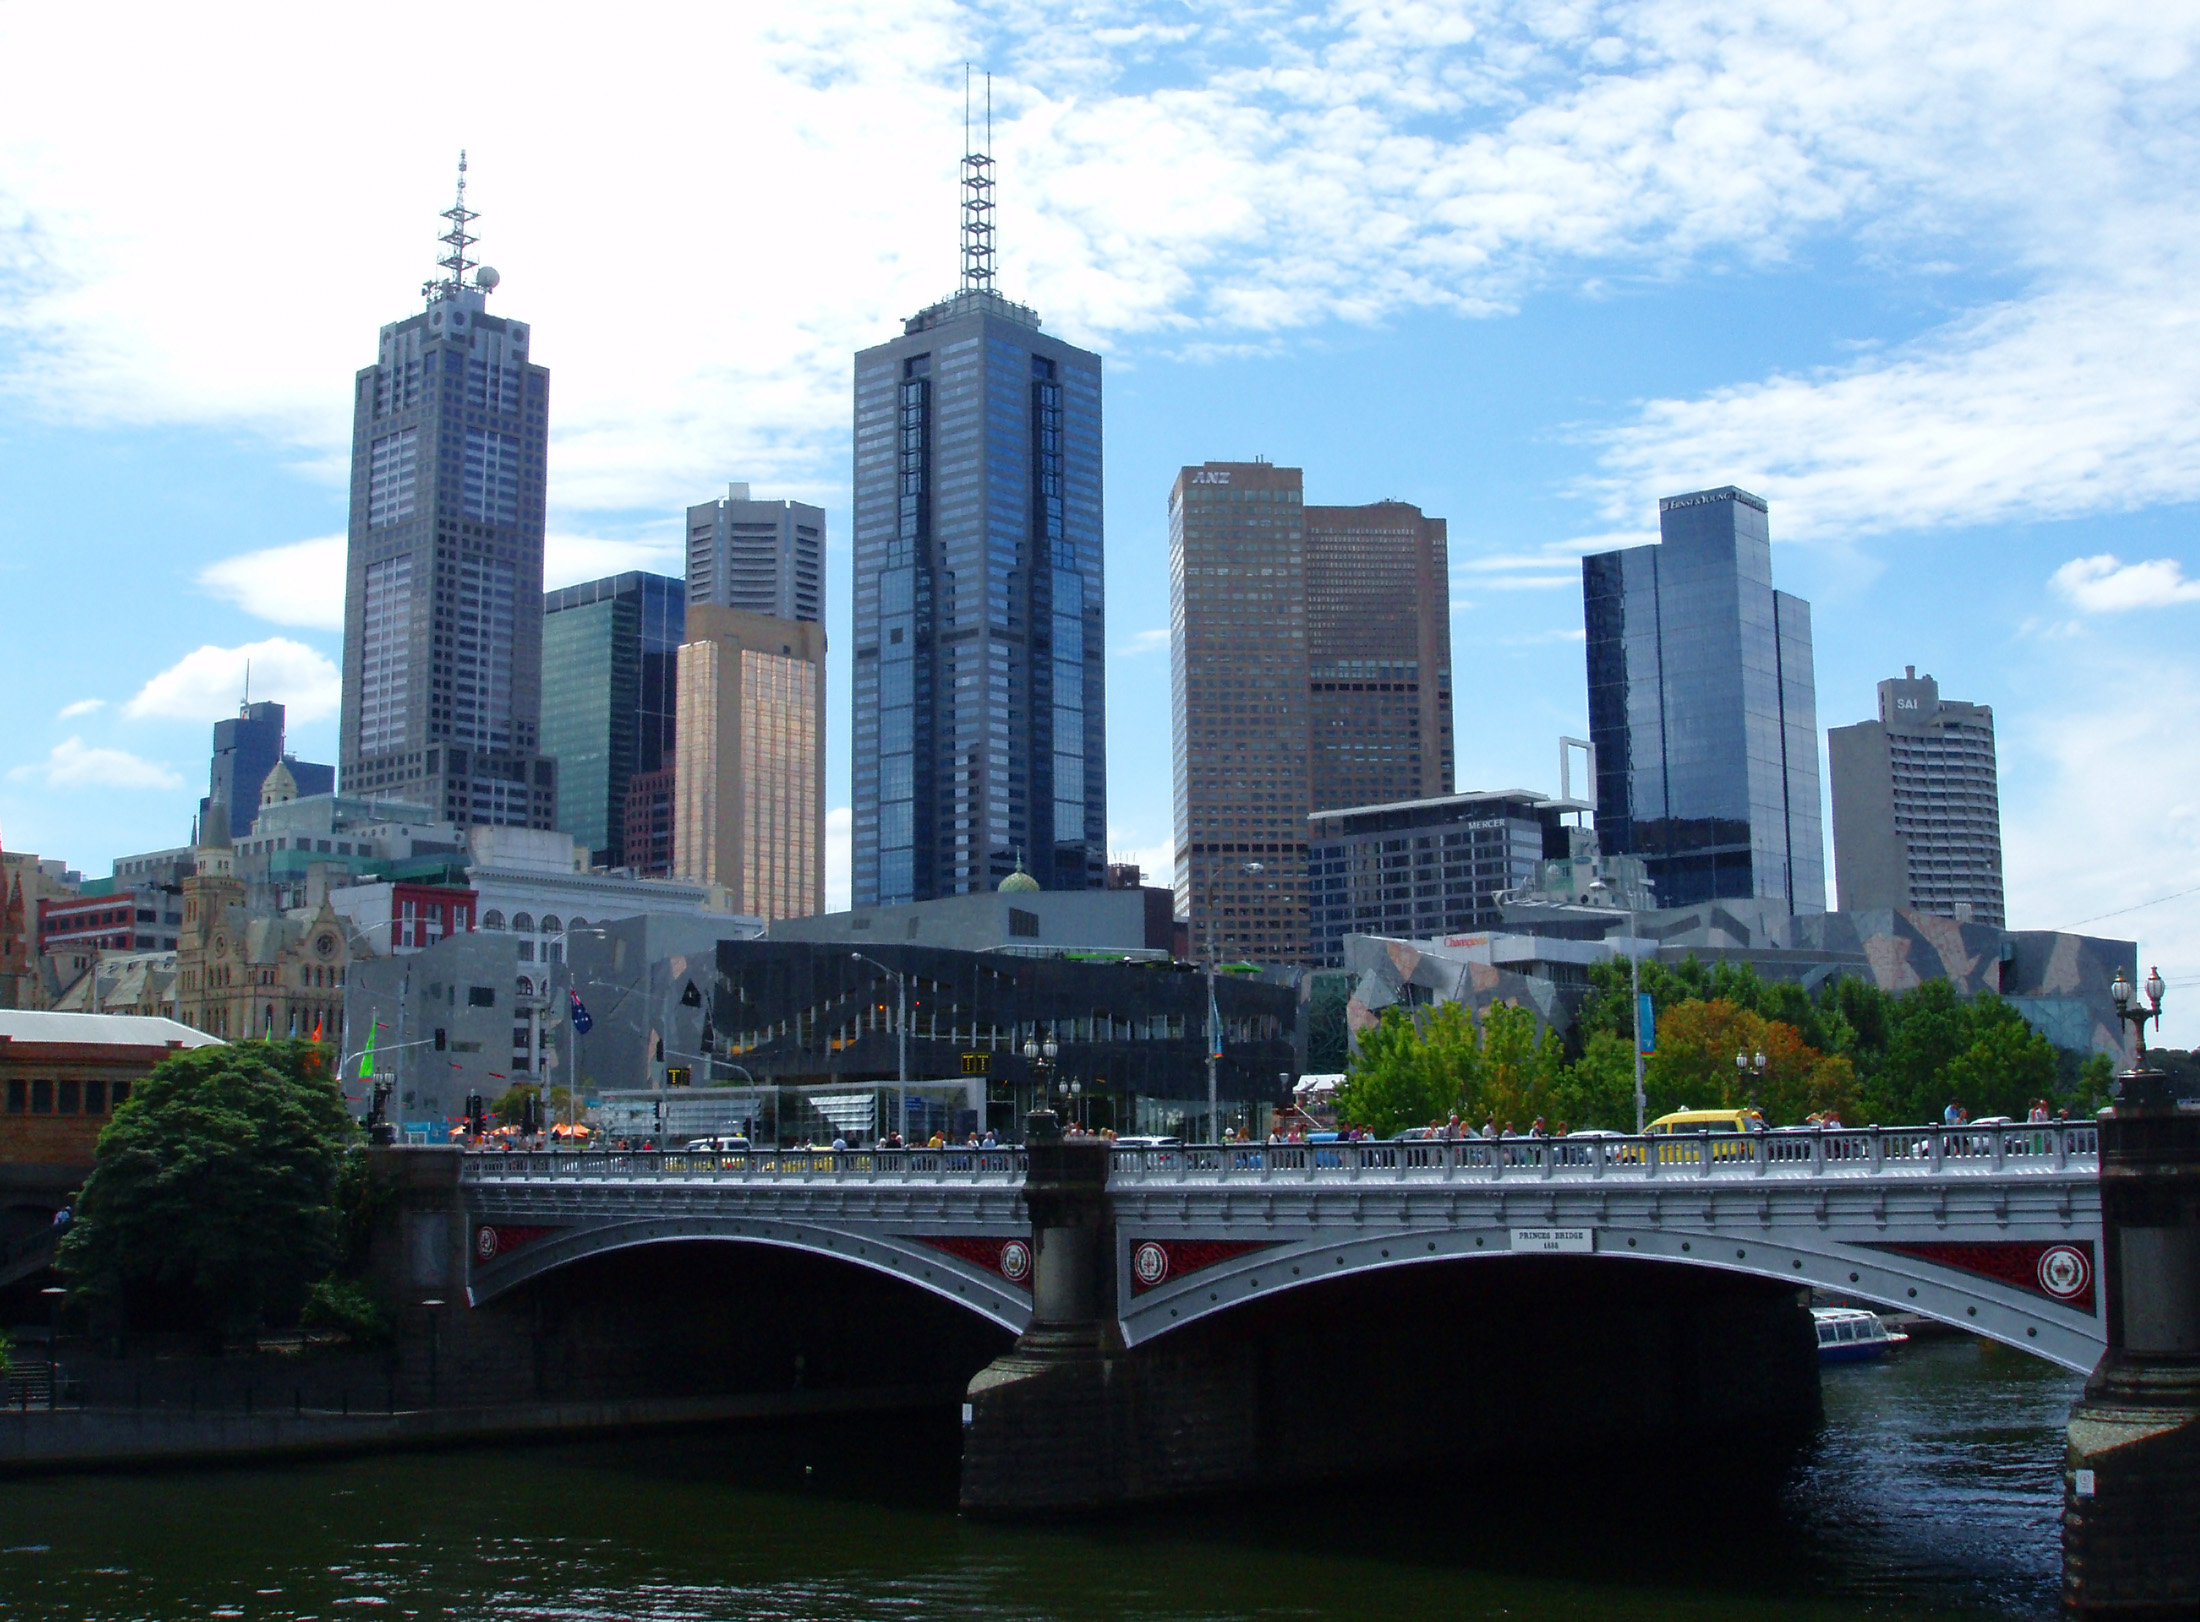 Vintage Princes Bridge at Yarra River with High Rise Buildings View in Melbourne Australia.